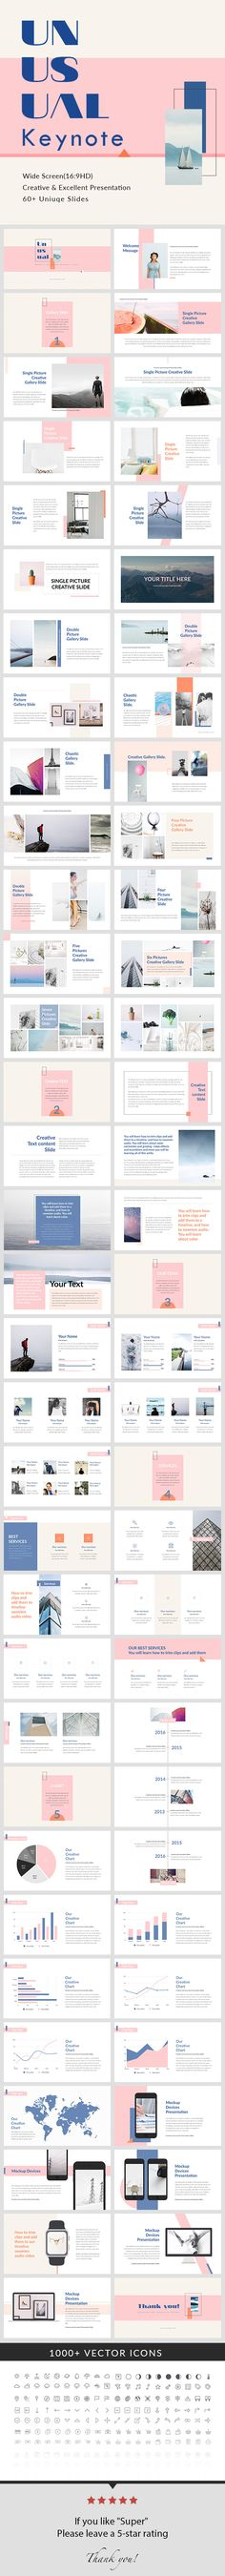 Unusual - Keynote Presentation Template - Creative Keynote Templates